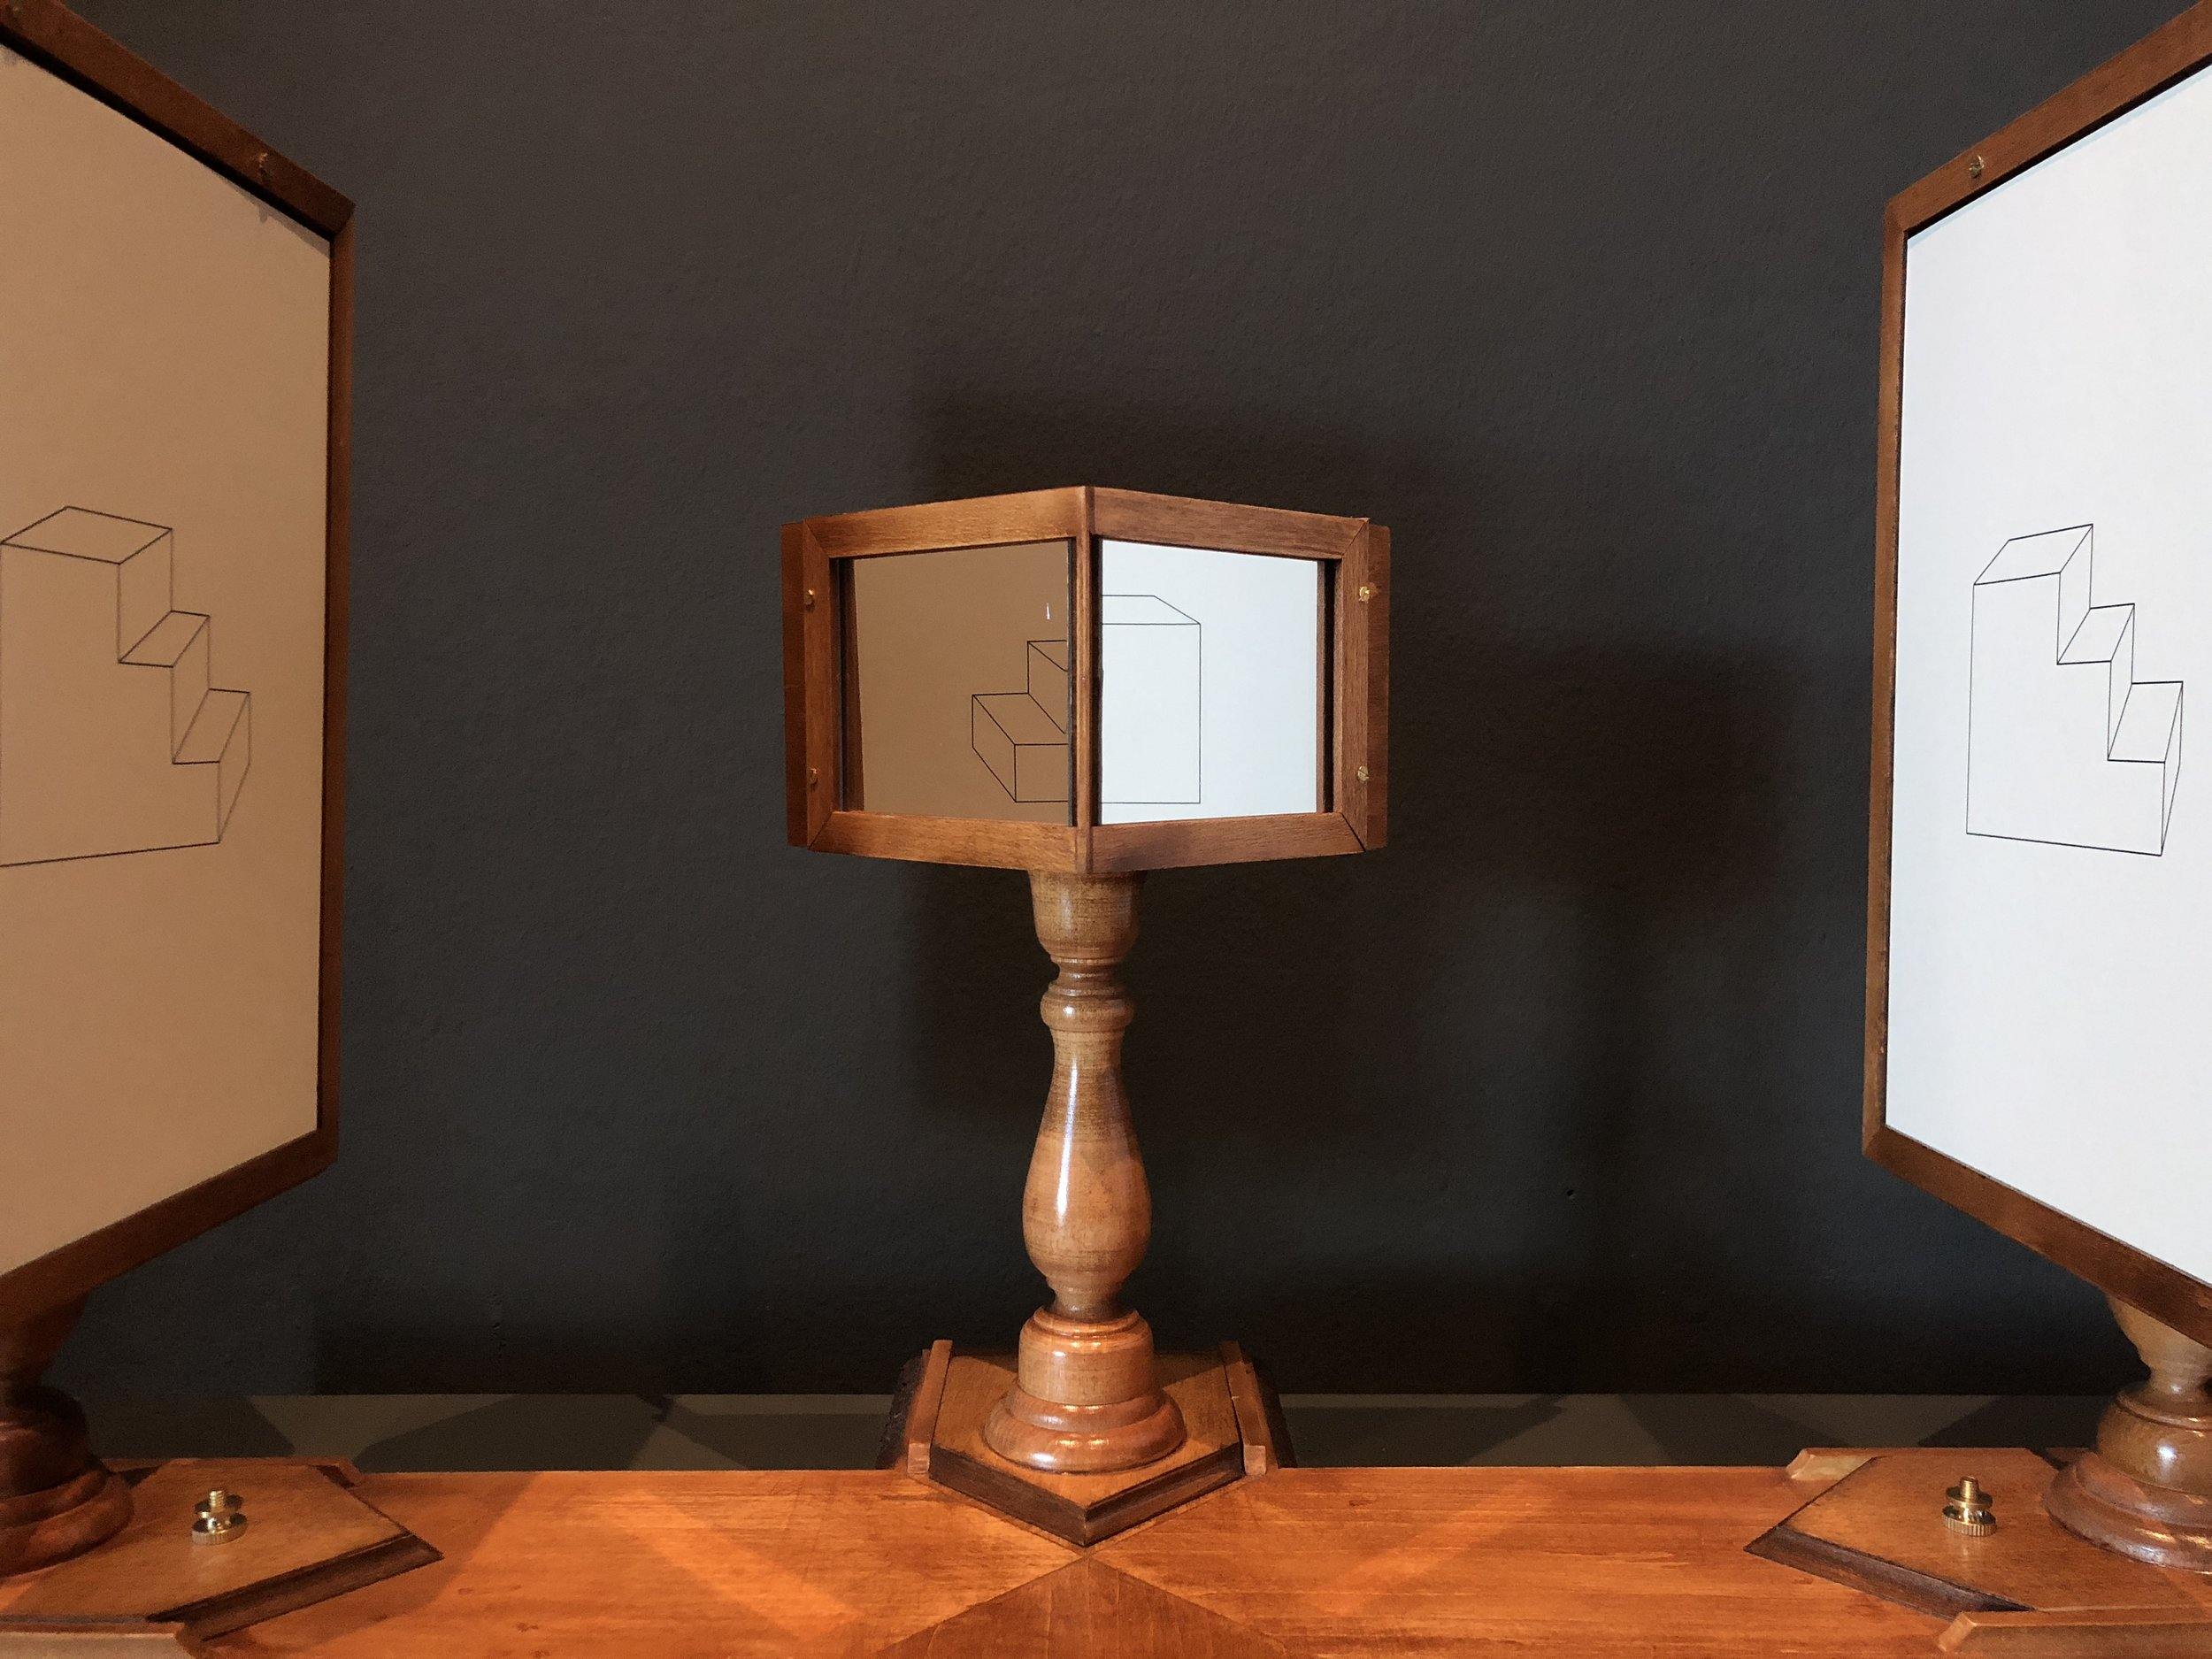 """In the 1830s Charles Wheatstone invented the """"stereoscope"""" to demonstrate that two slightly dissimilar diagrams can be resolved by the eyes and brain into a single volumetric image that does not correspond to a physical object in the world."""